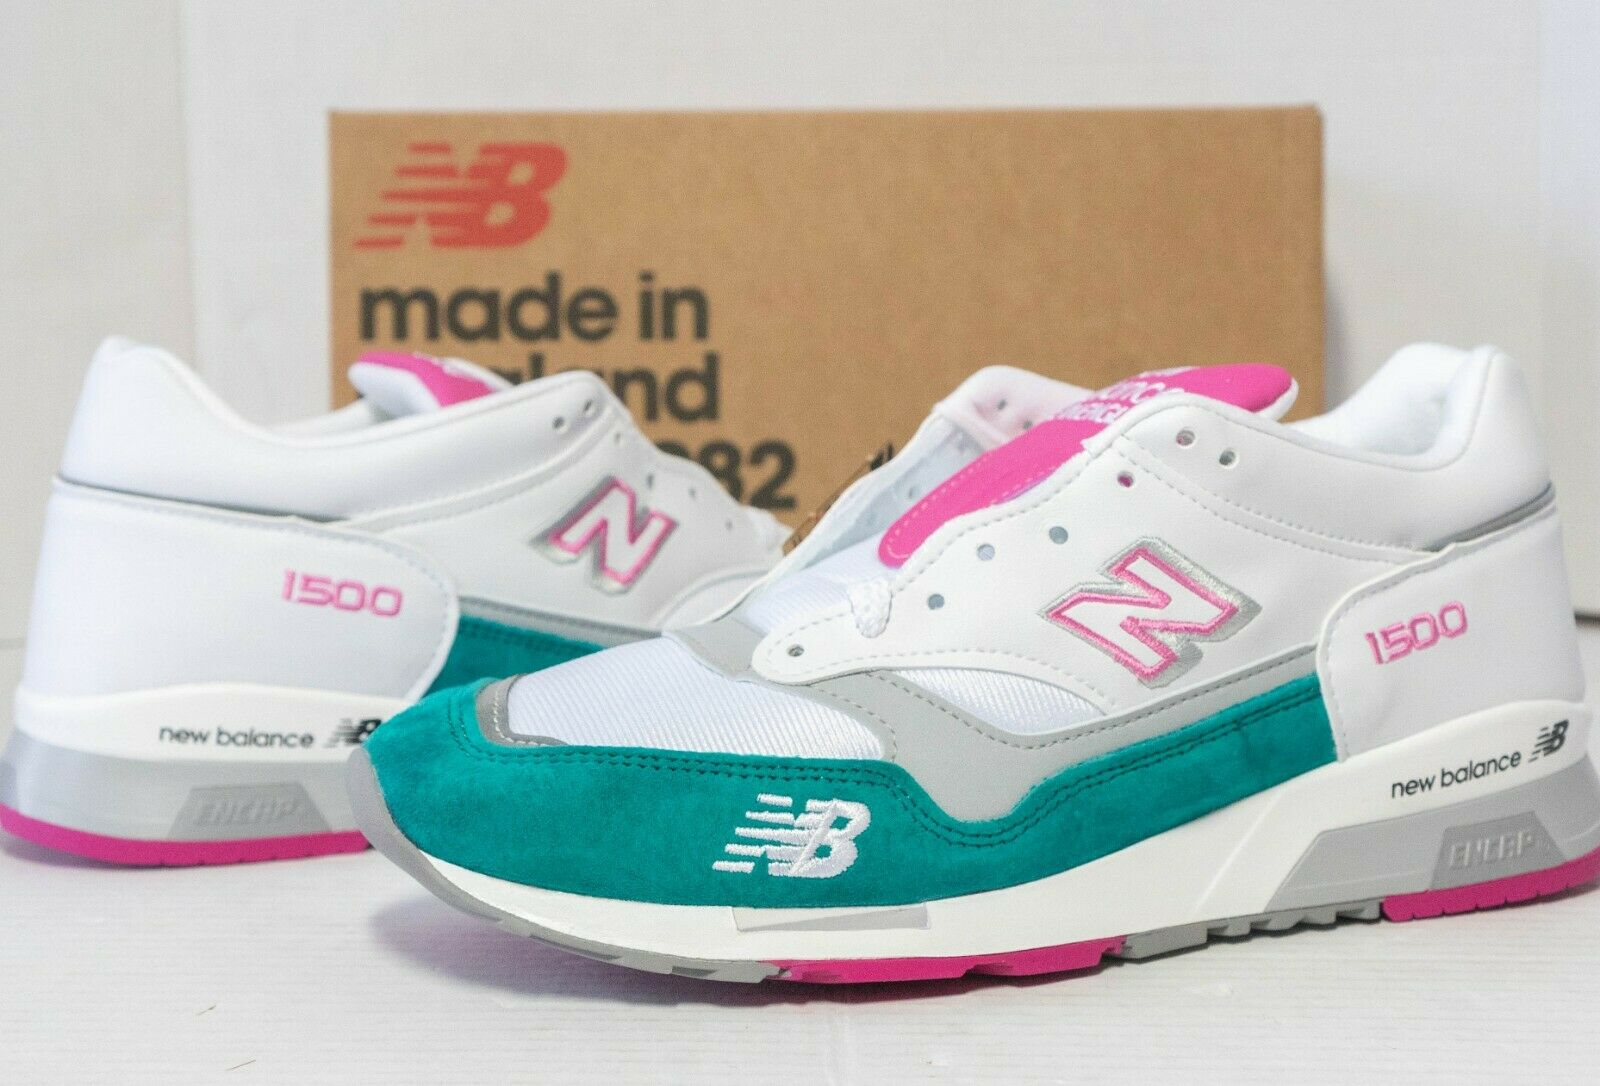 NEW Balance 1500 GT Trainers UK Size 9